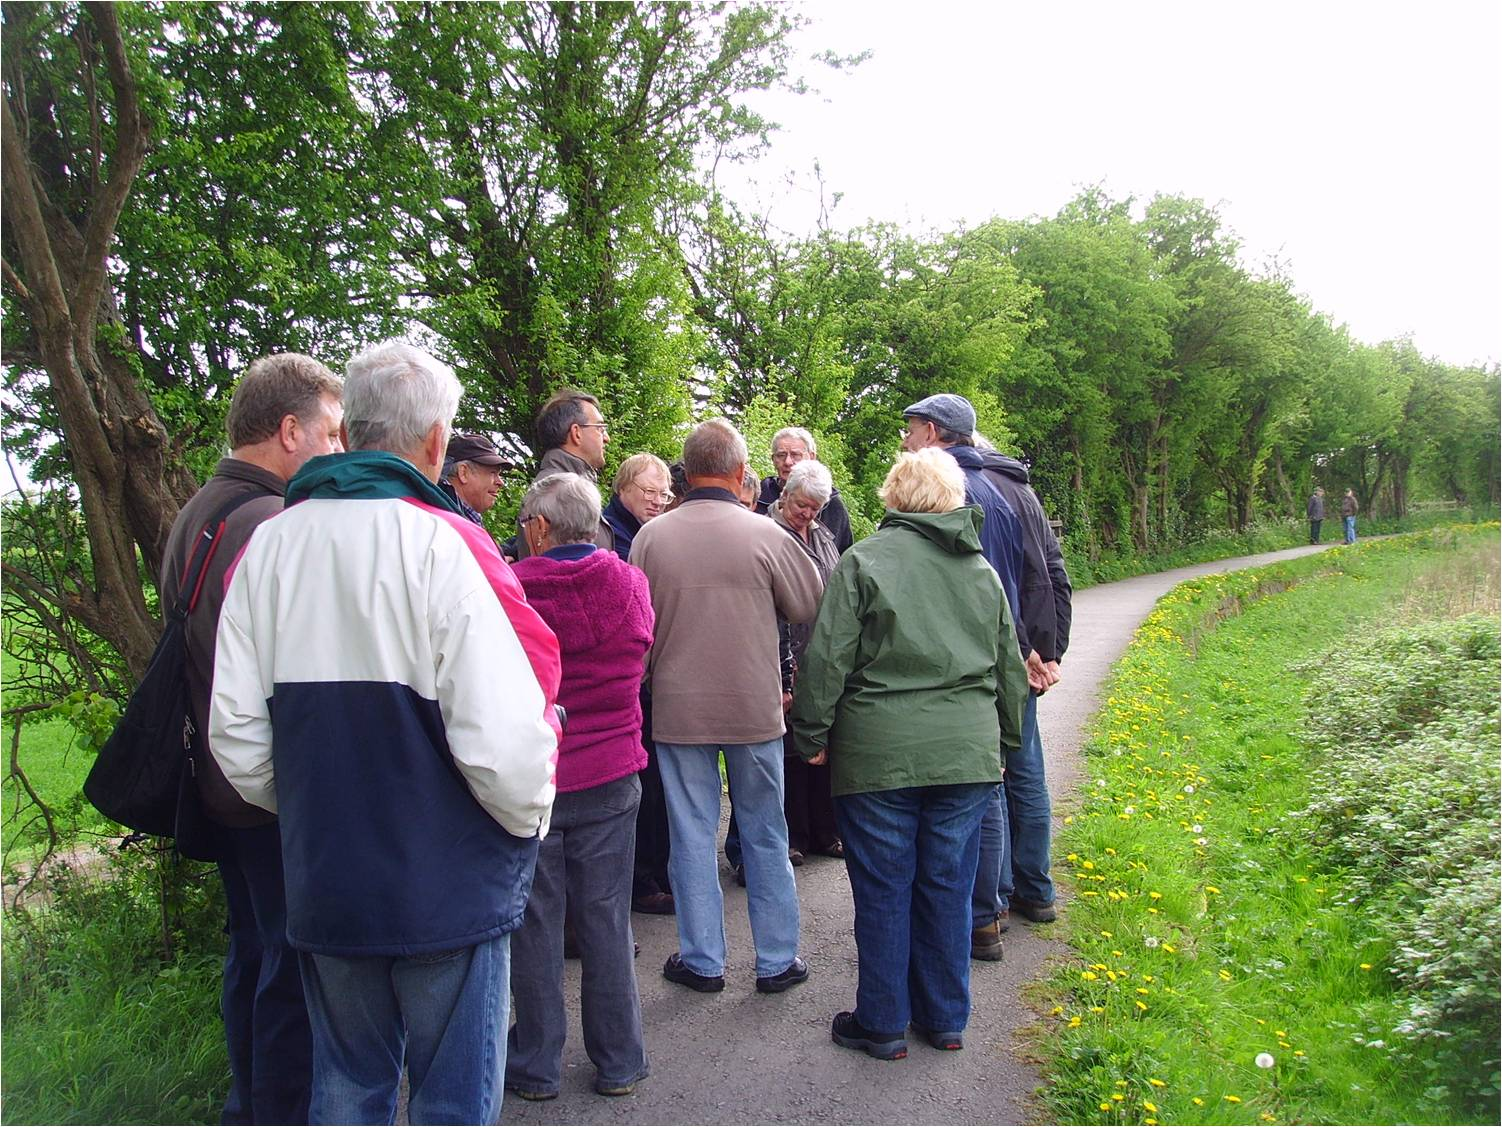 One of the walking parties on the Northern Canal Meeting at Swarkestone in April